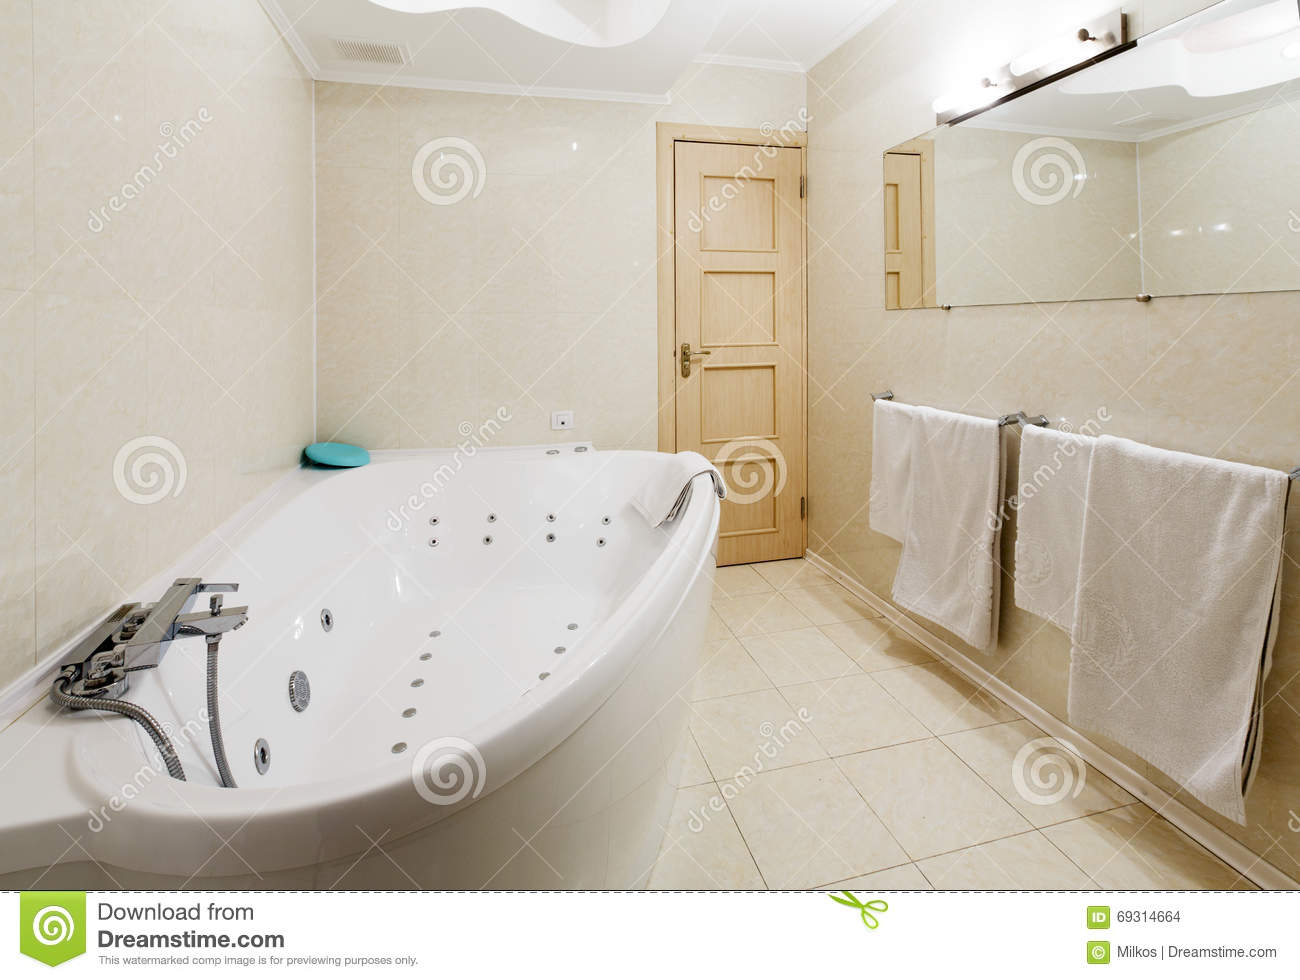 Interior Of A Modern Hotel Bathroom, Jacuzzi. Stock Photo - Image of ...